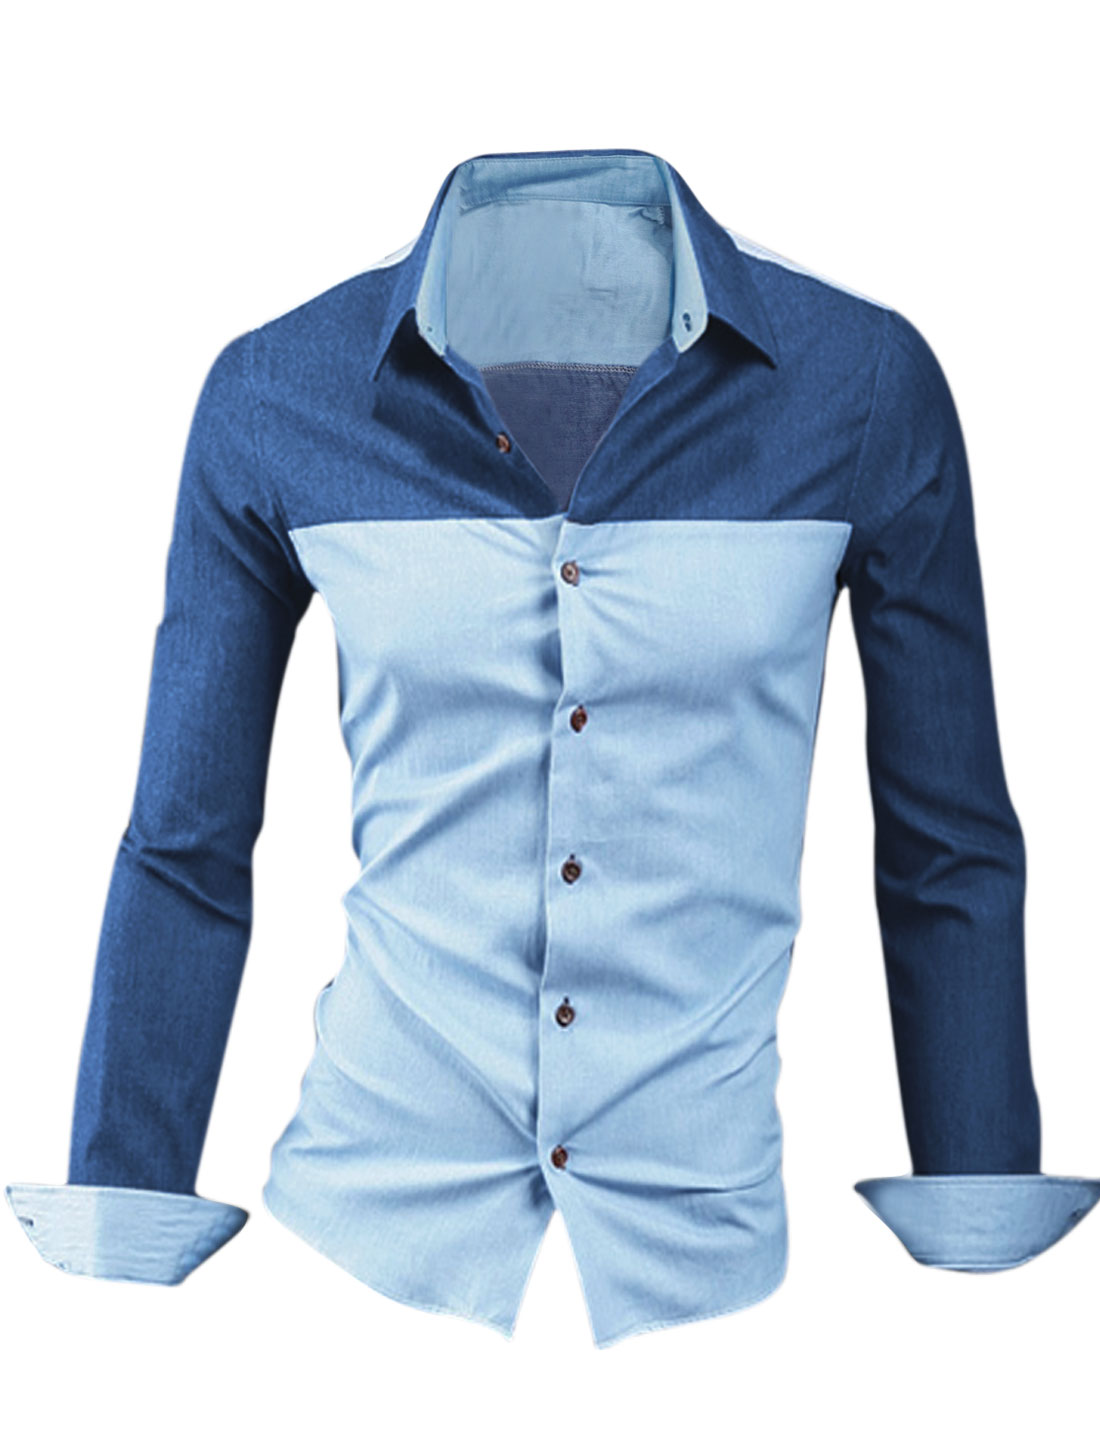 Men Point Collar Splicing Two Tone Stylish Top Shirt Light Blue M